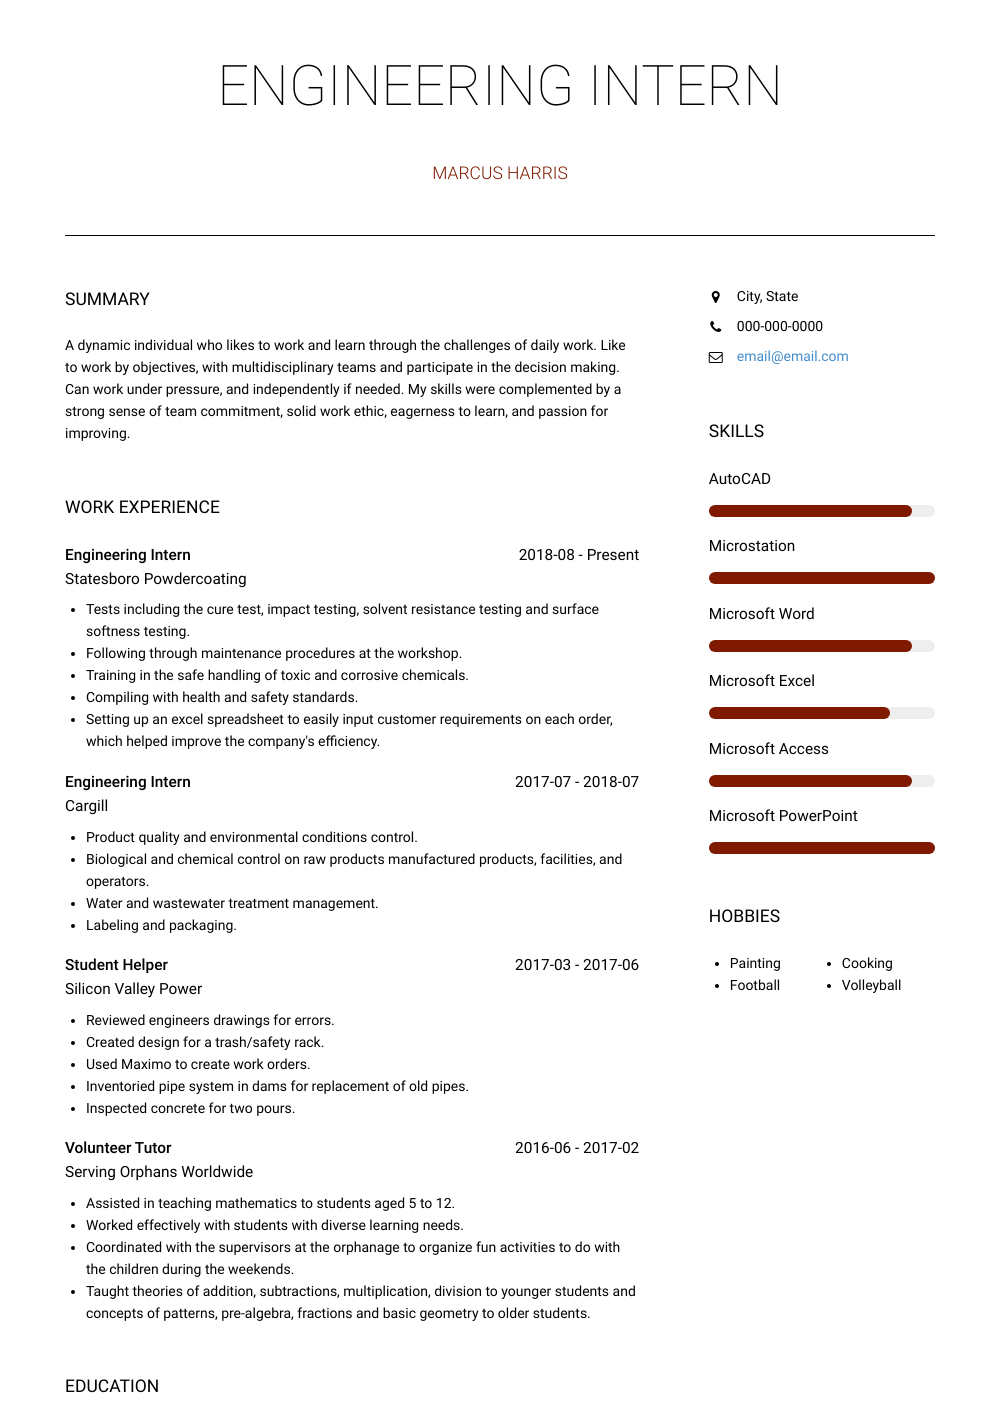 Engineering Intern Resume Sample and Template